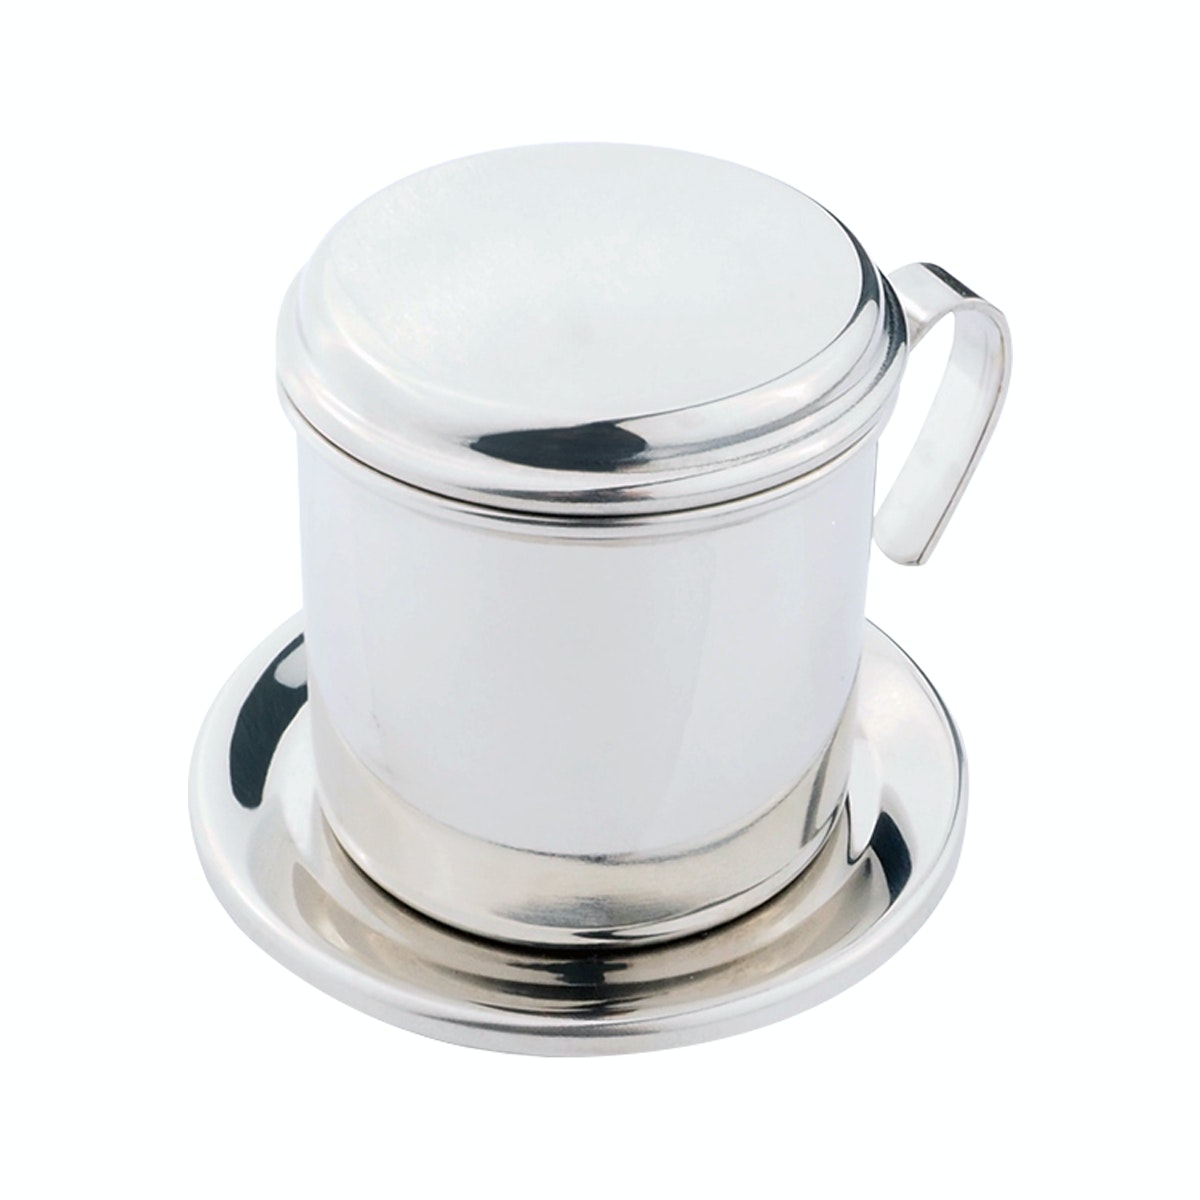 Edelmann Coffee Dripper 150ml - Penyaring Kopi